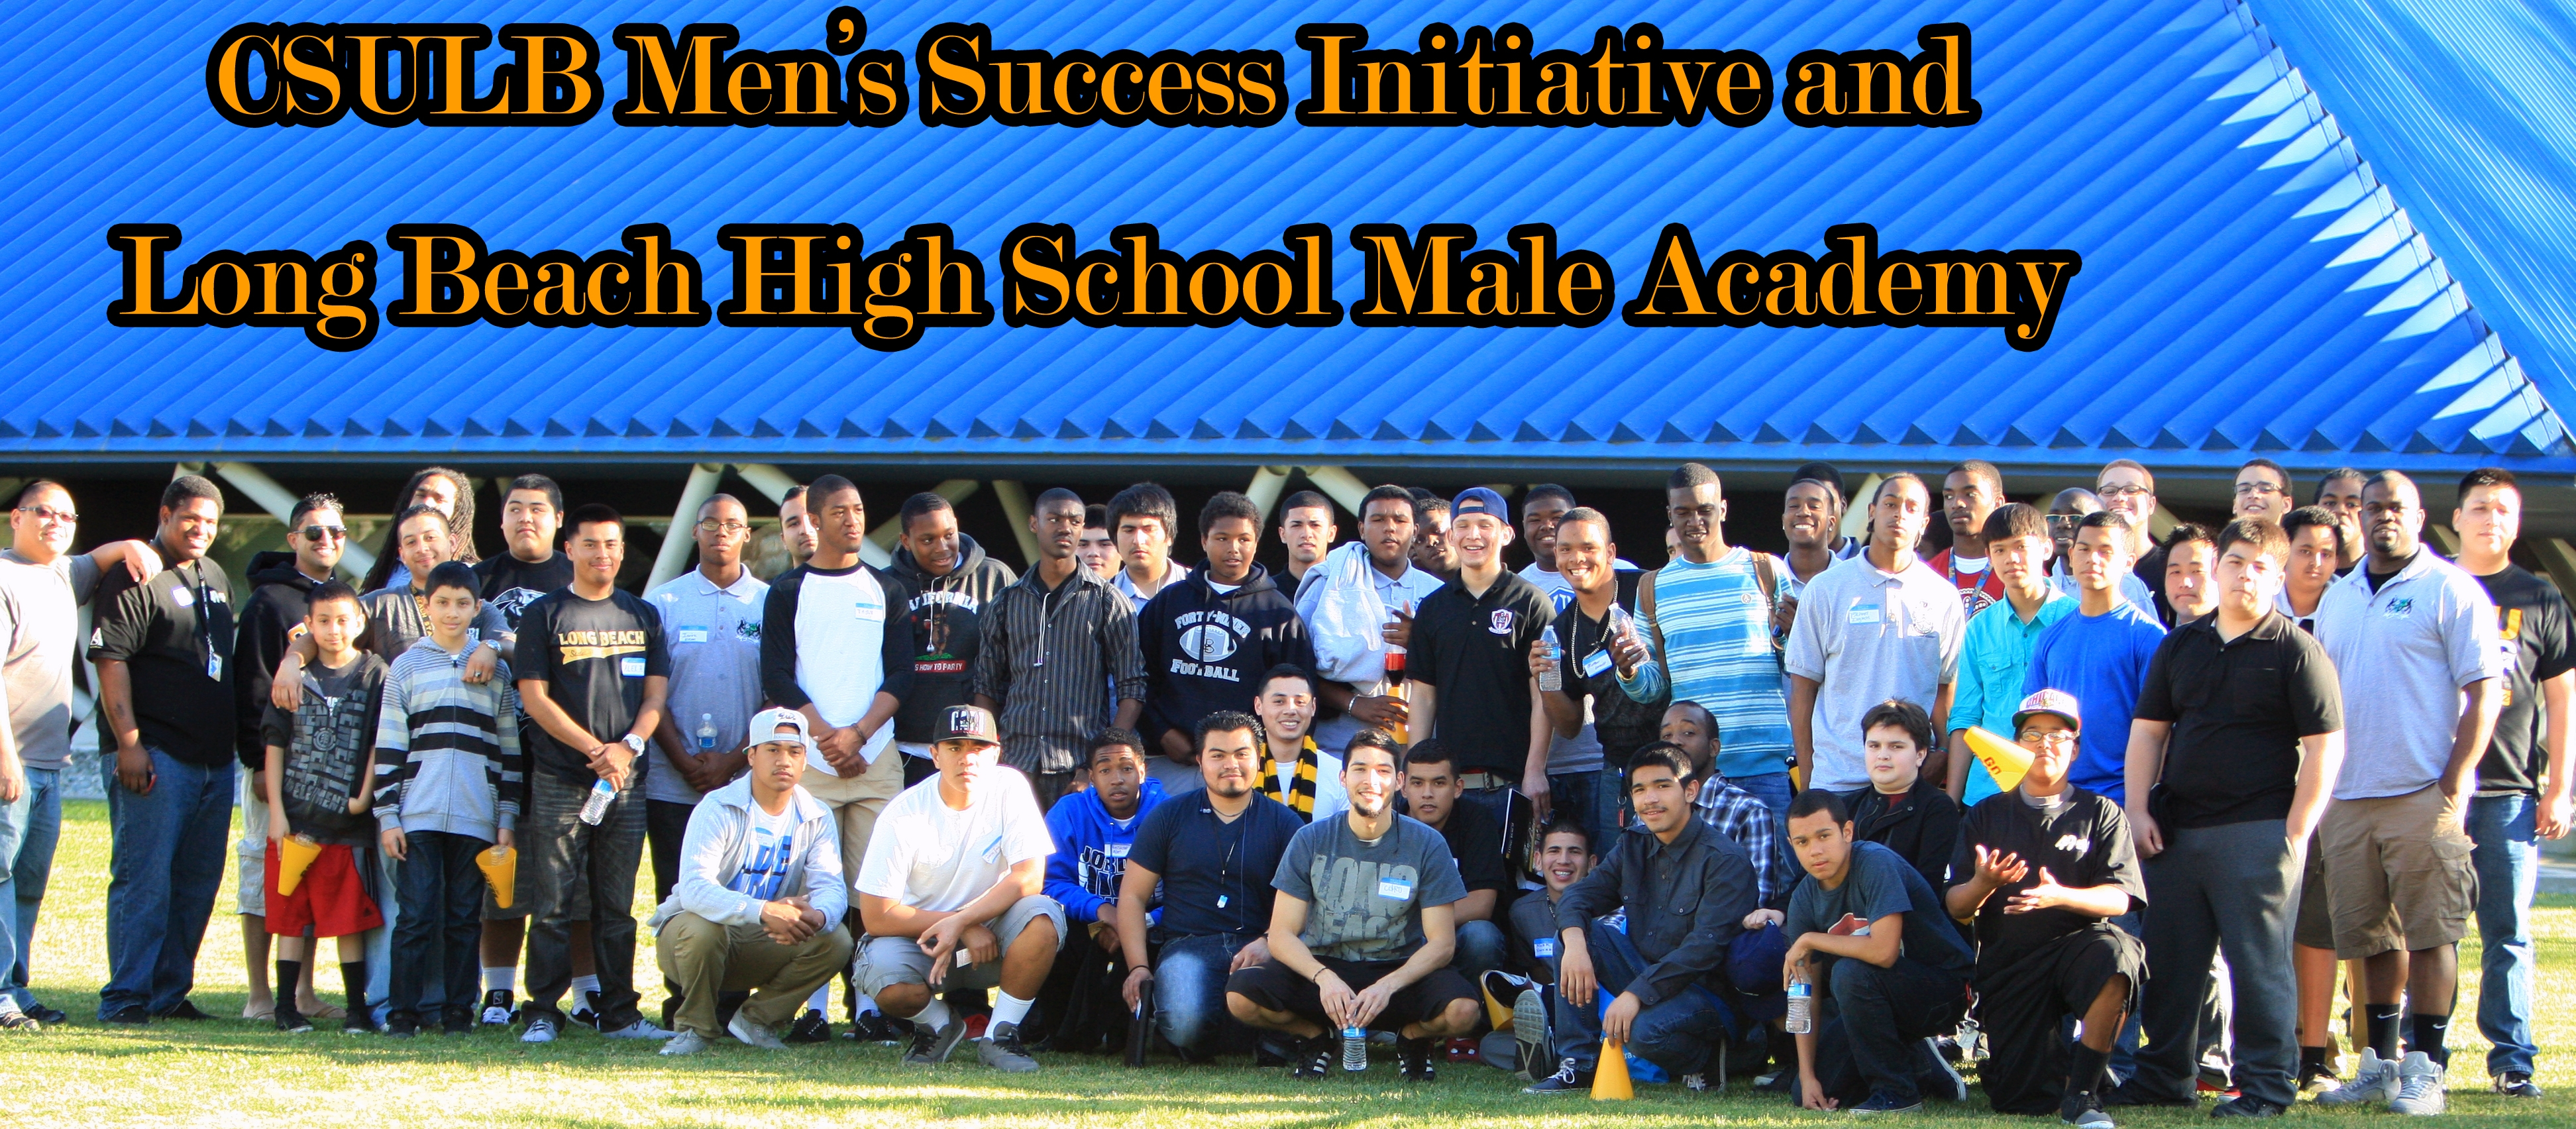 MA and CSULB MENS Alliance.JPG